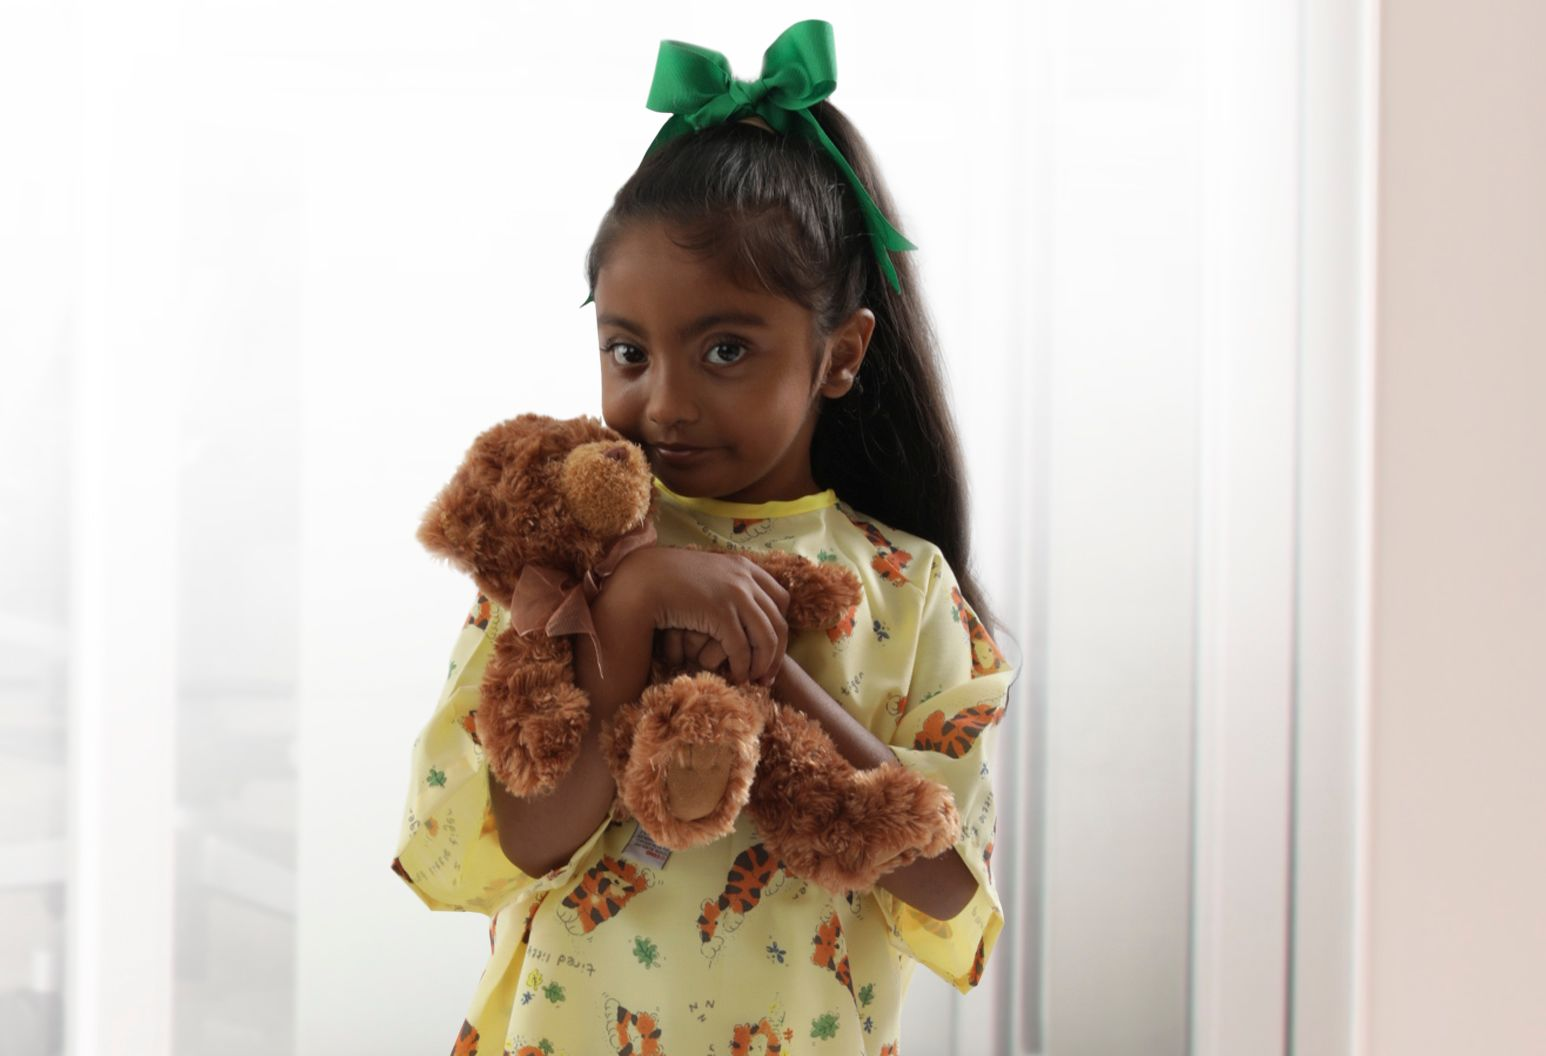 young girl wearing yellow pajamas has a green bow in her hair and is holding a teddy bear